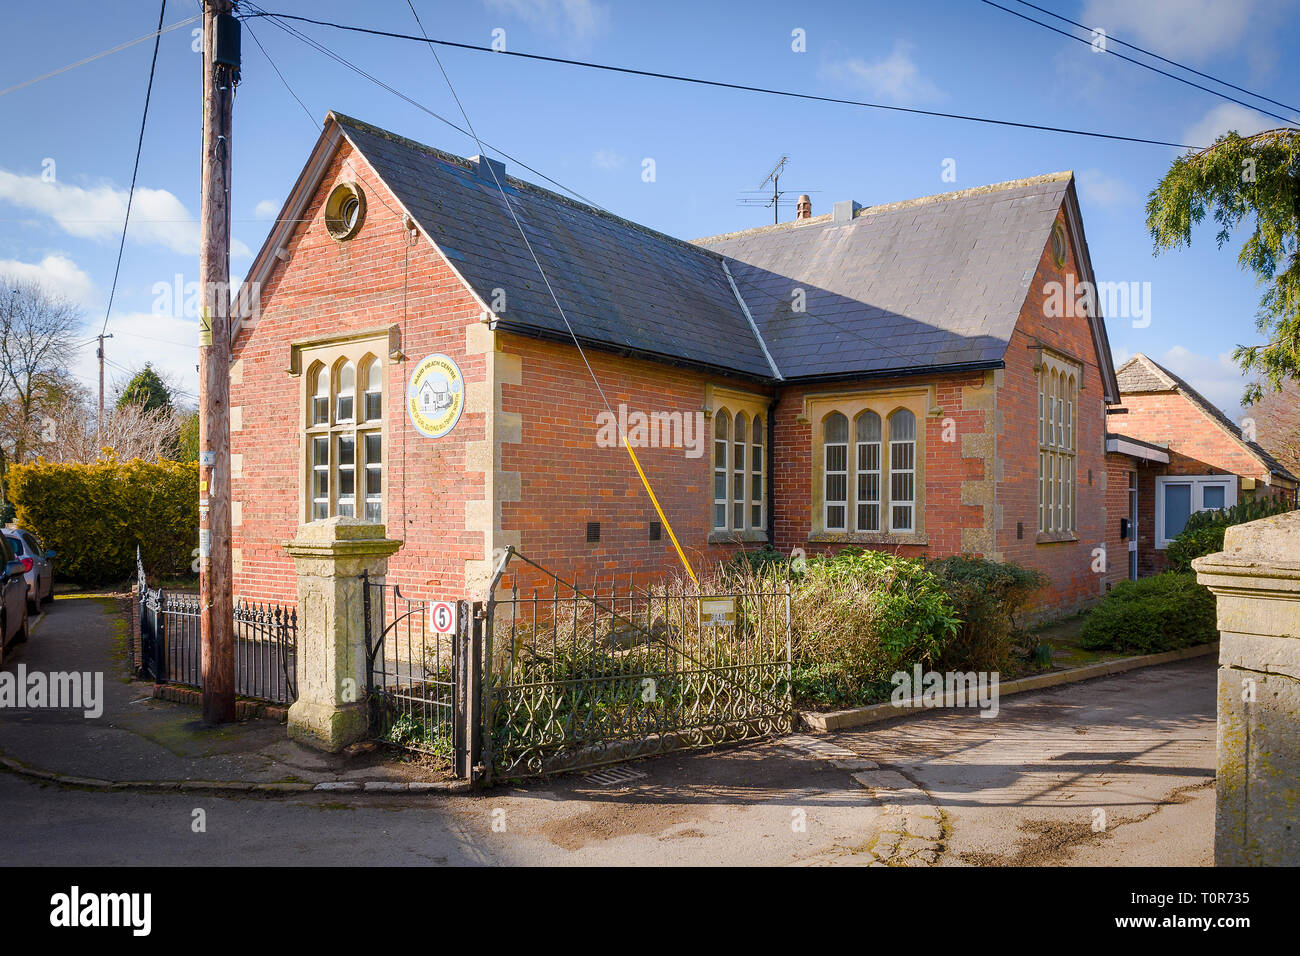 The Maud Heath Centre  - home of Girl Guiding Wiltshire North in England UK - a former villaage school building - Stock Image